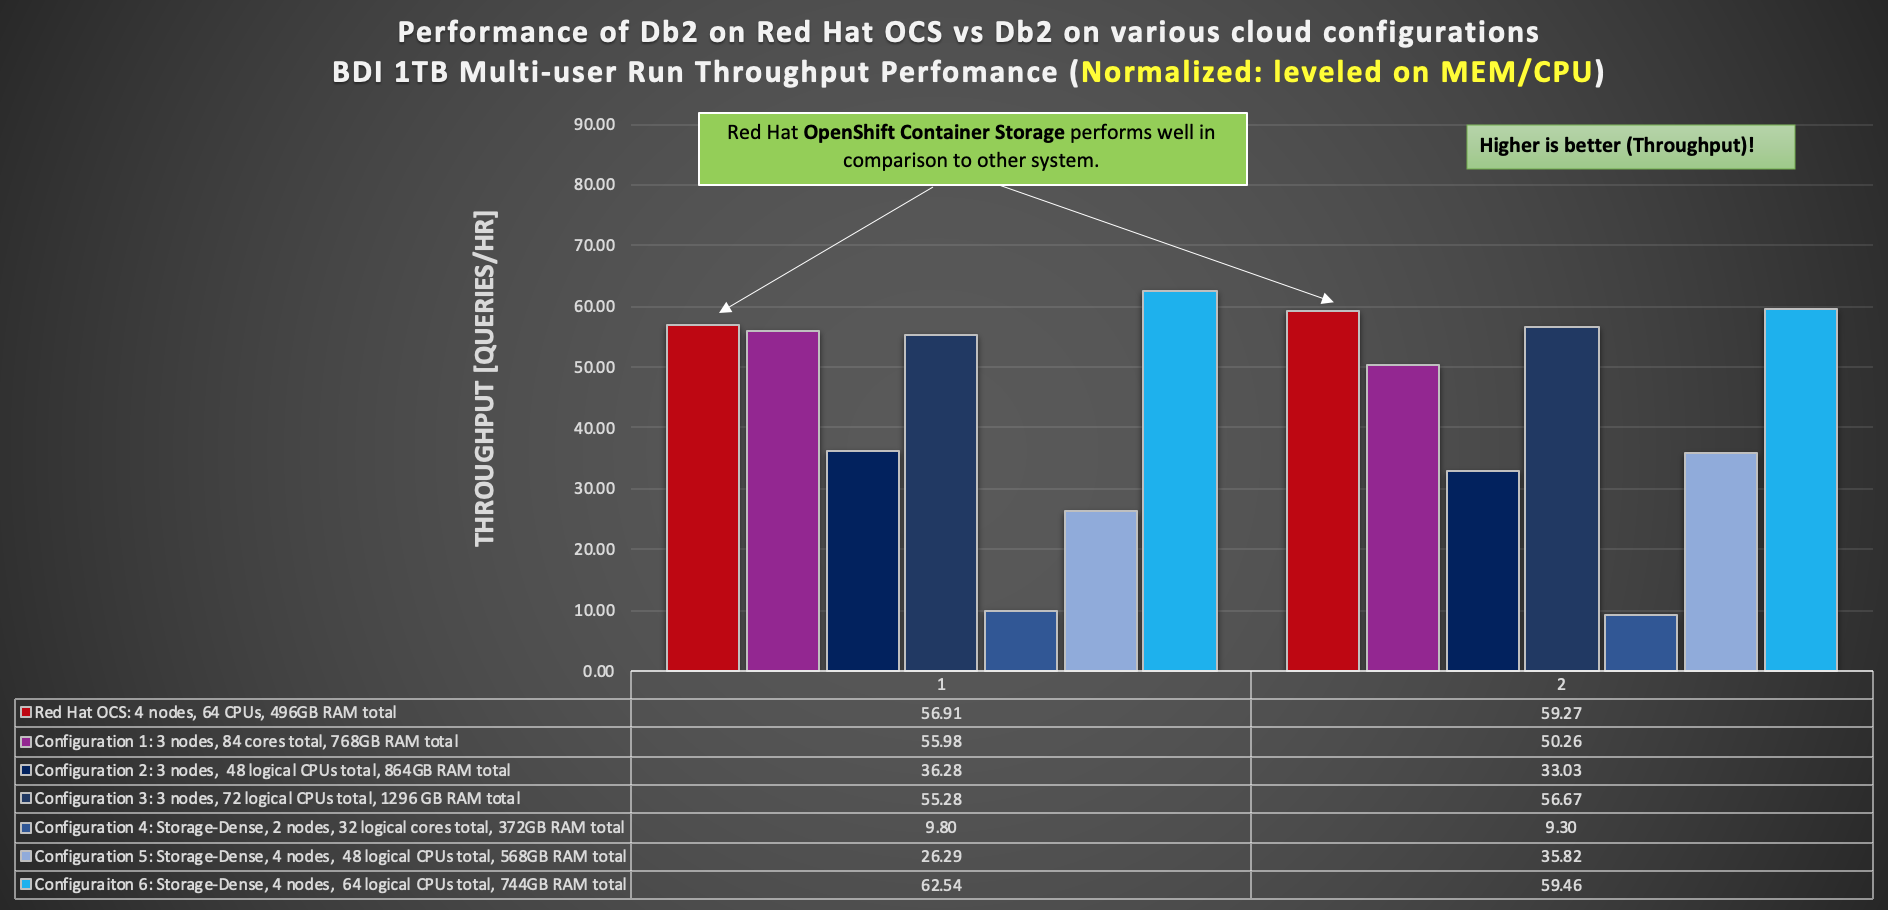 Performance of Db2 on Red Hat OCS vs. Db2 on various cloud configurations